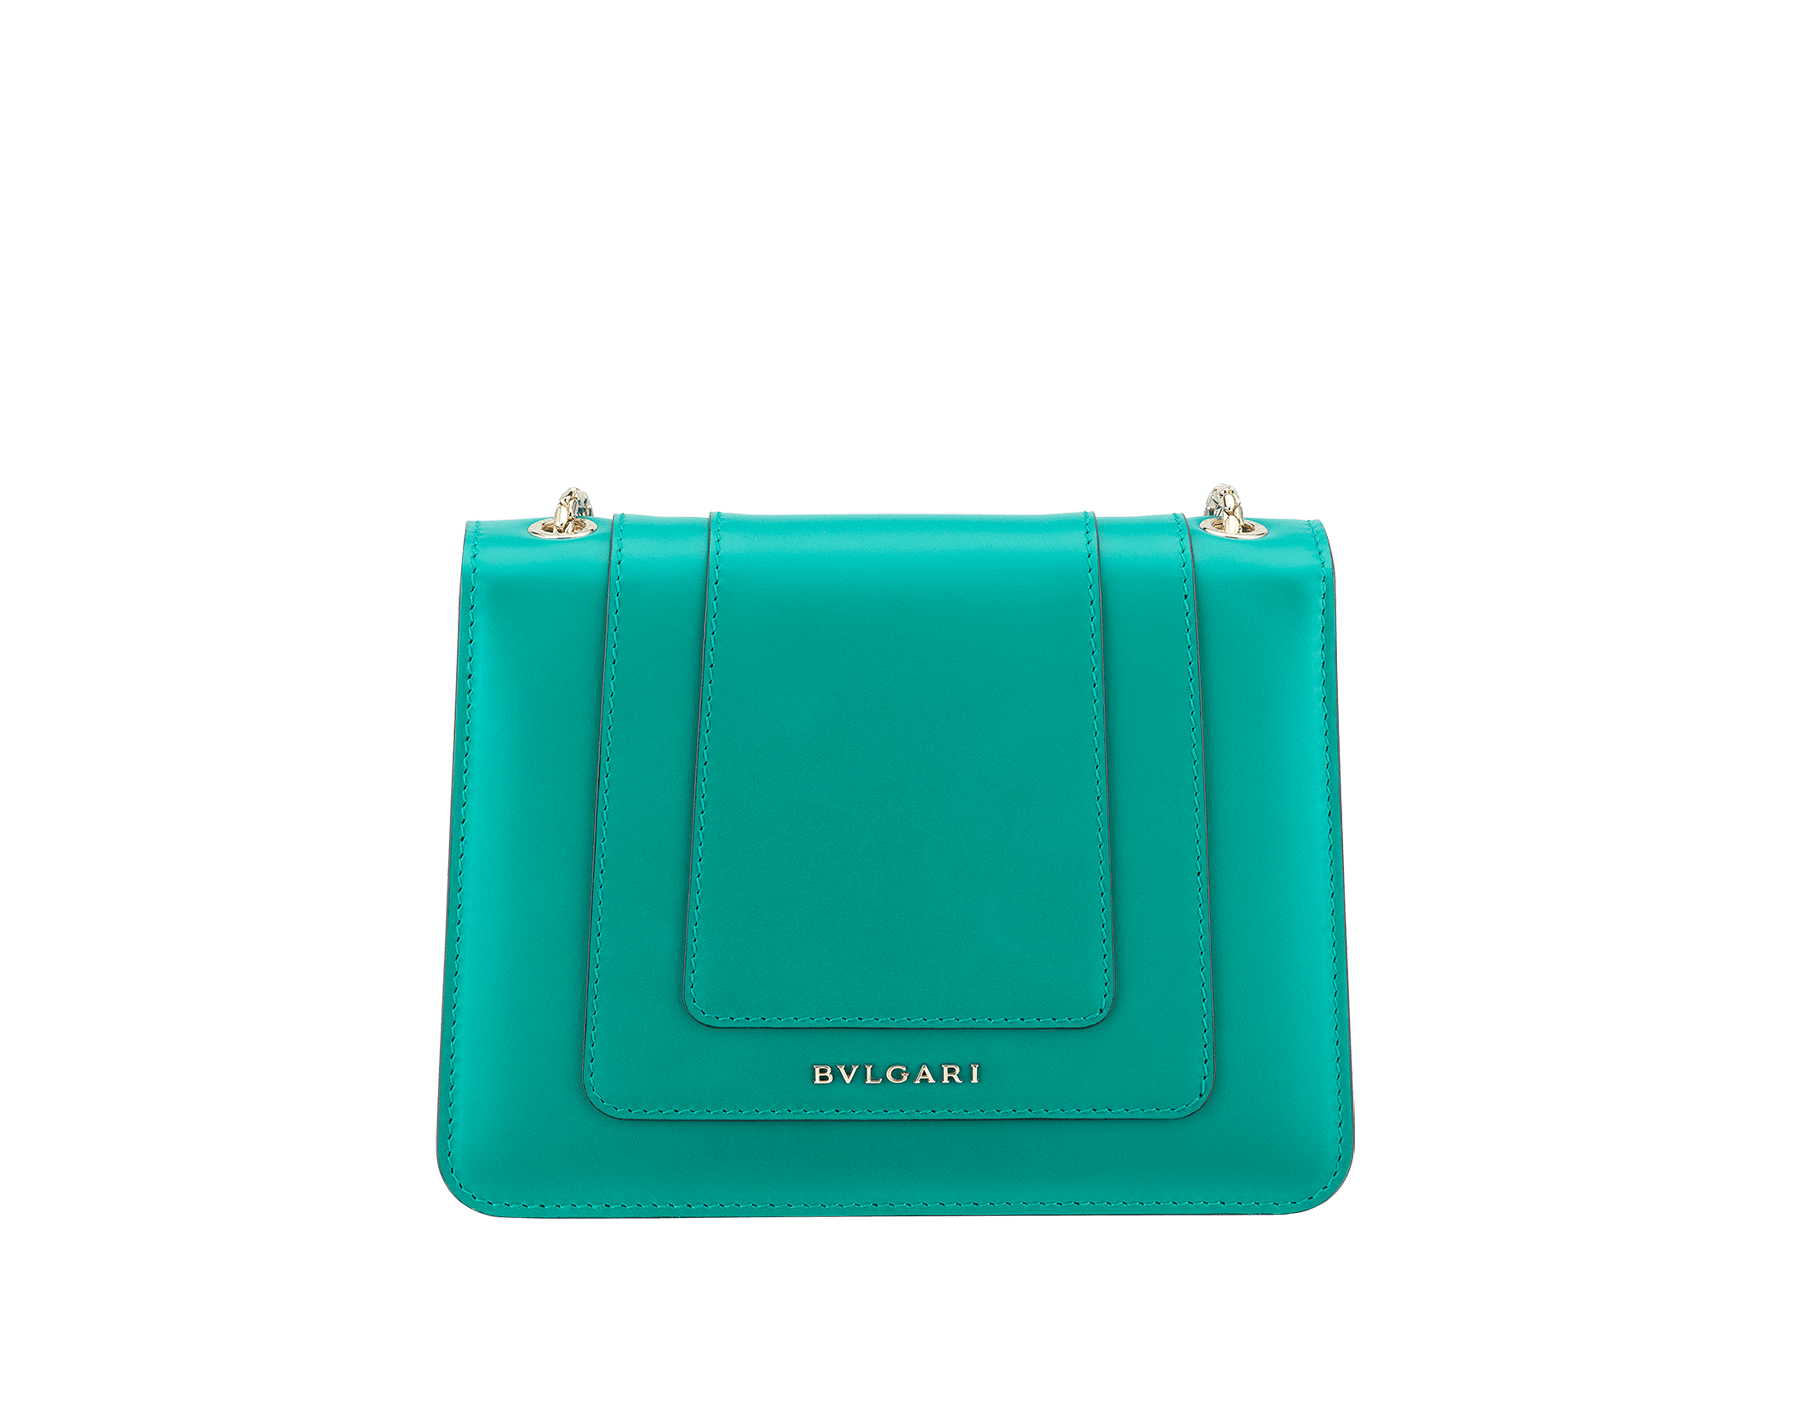 Serpenti Forever crossbody bag in tropical turquoise smooth calf leather body and sea star coral calf leather sides. Snakehead closure in light gold plated brass decorated with tropical turquoise and black enamel, and black onyx eyes. 287958 image 3